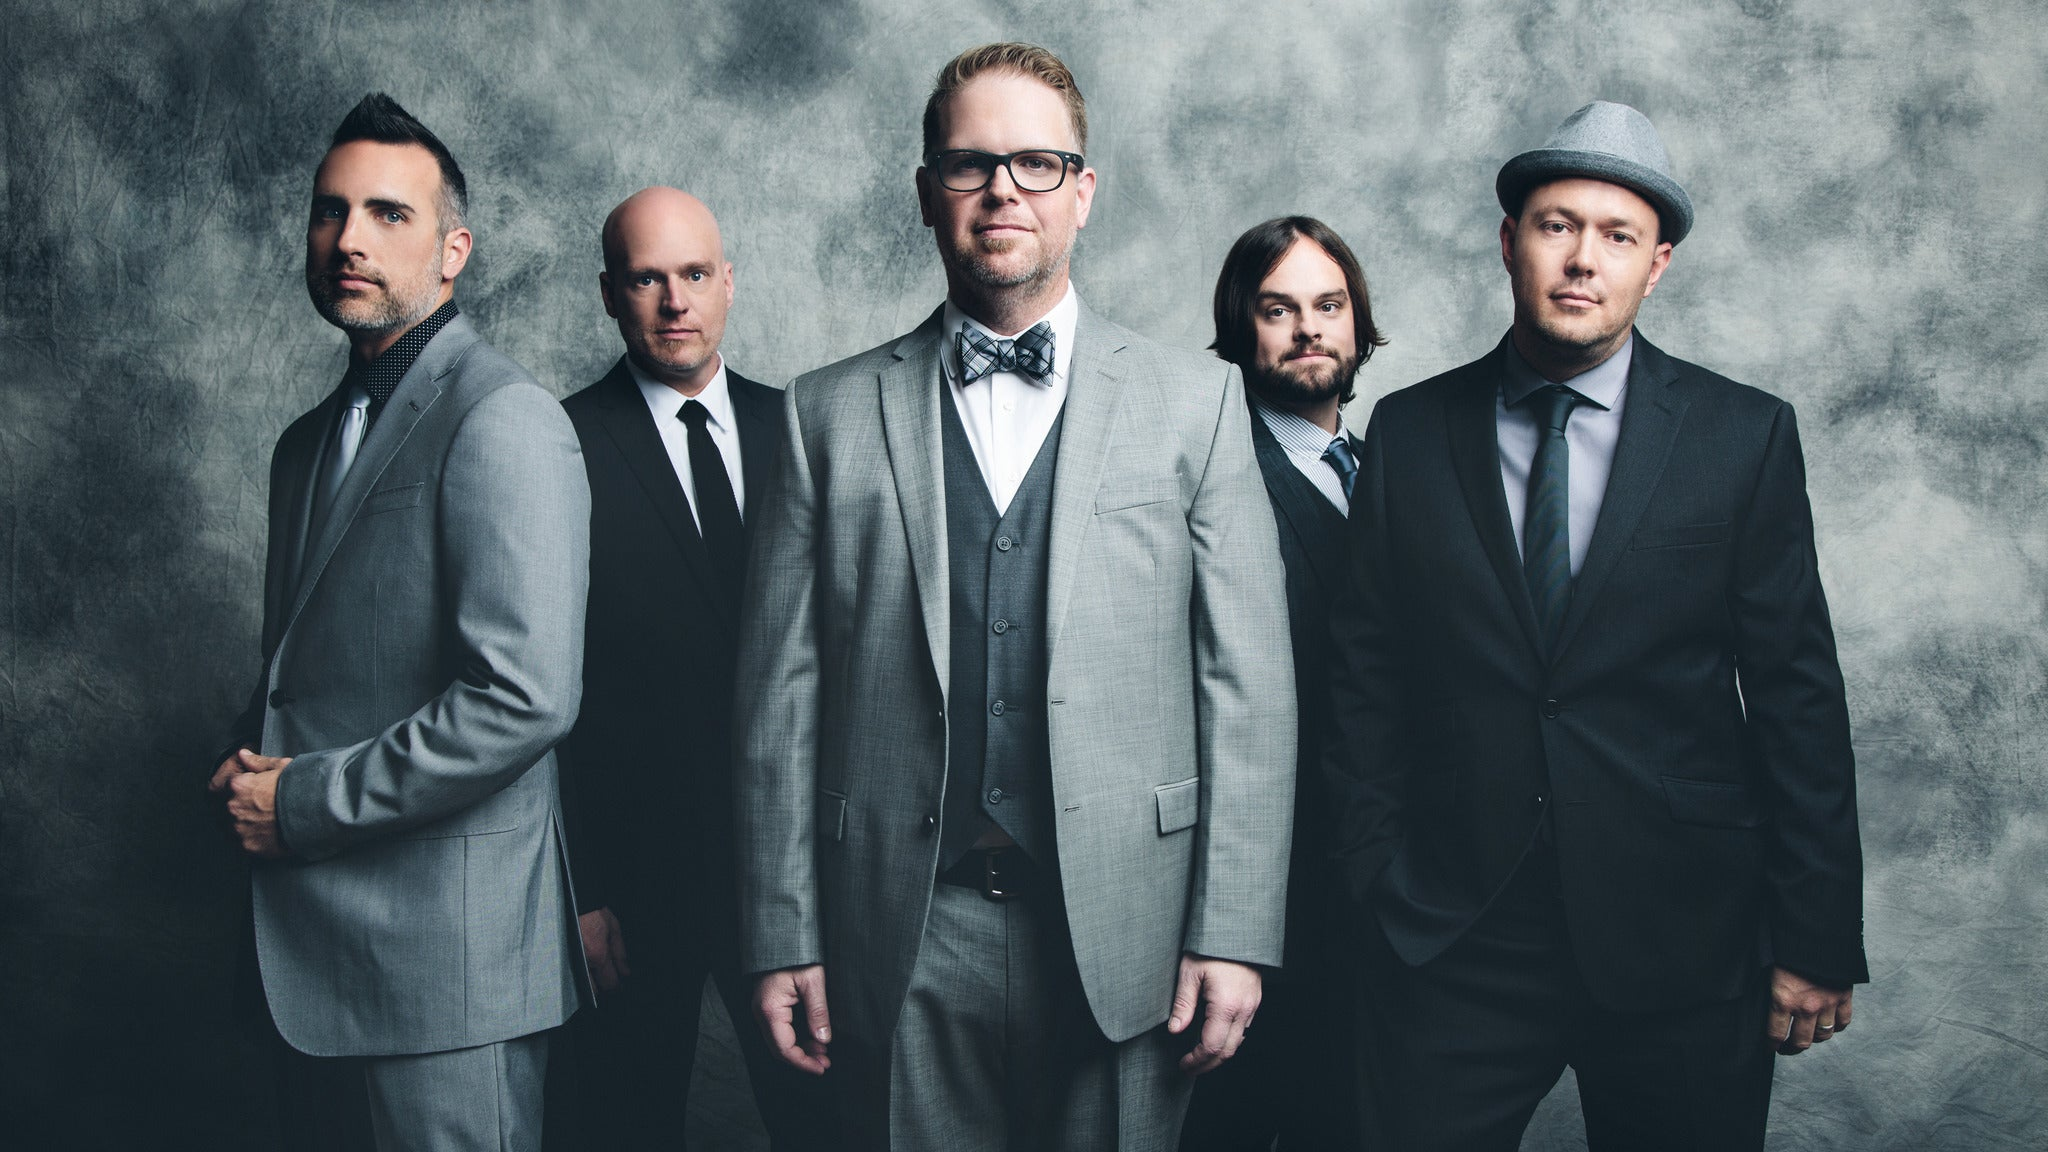 MercyMe - Live in Hawaii at Neal S Blaisdell Arena